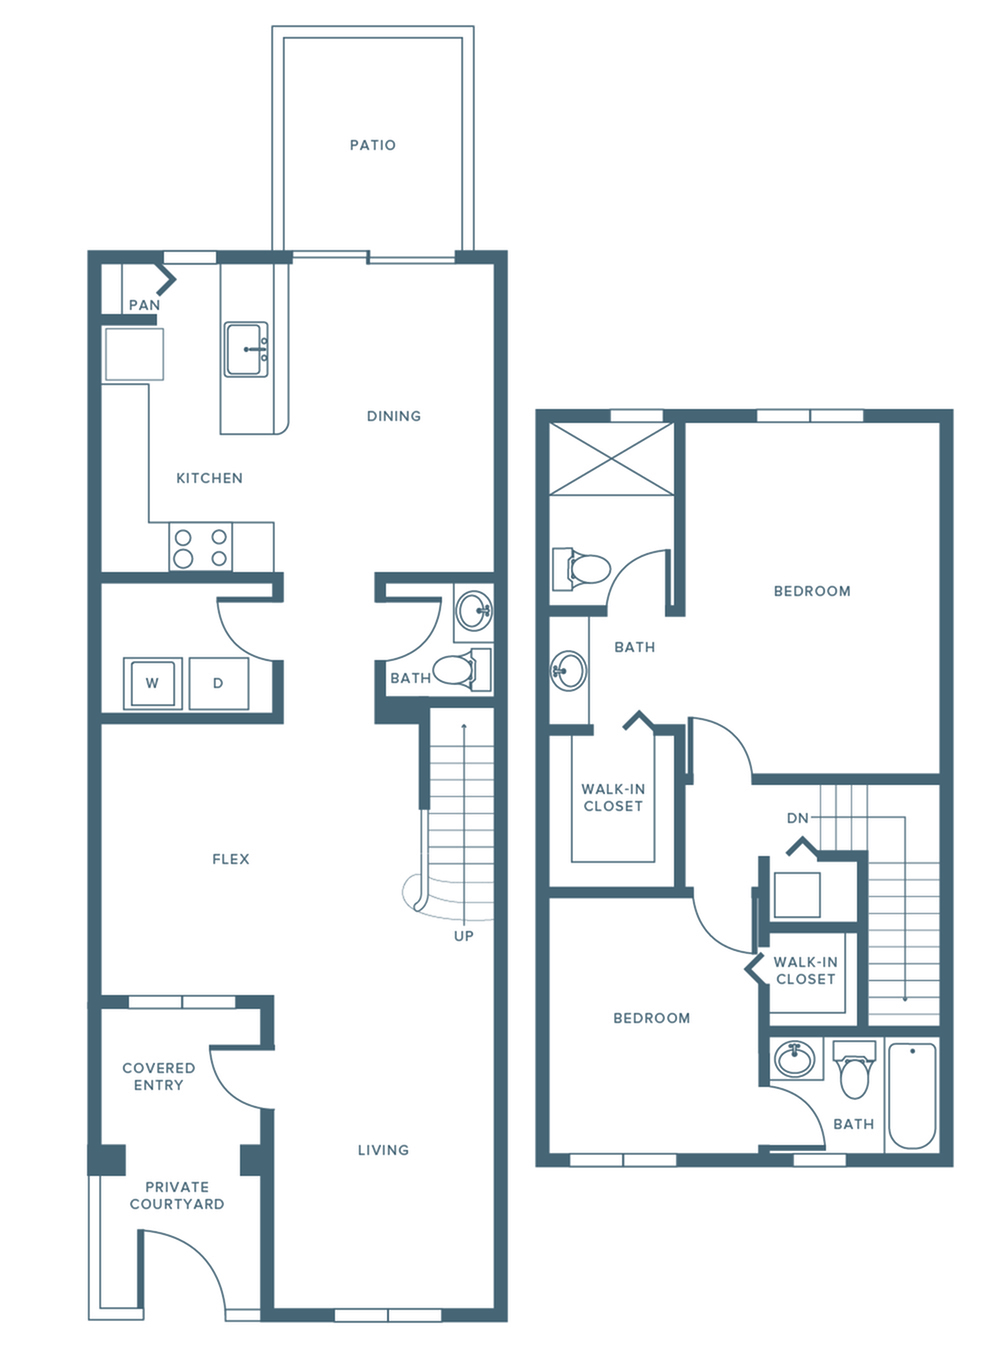 1379 square foot two bedroom two and a half bath two level apartment floorplan image